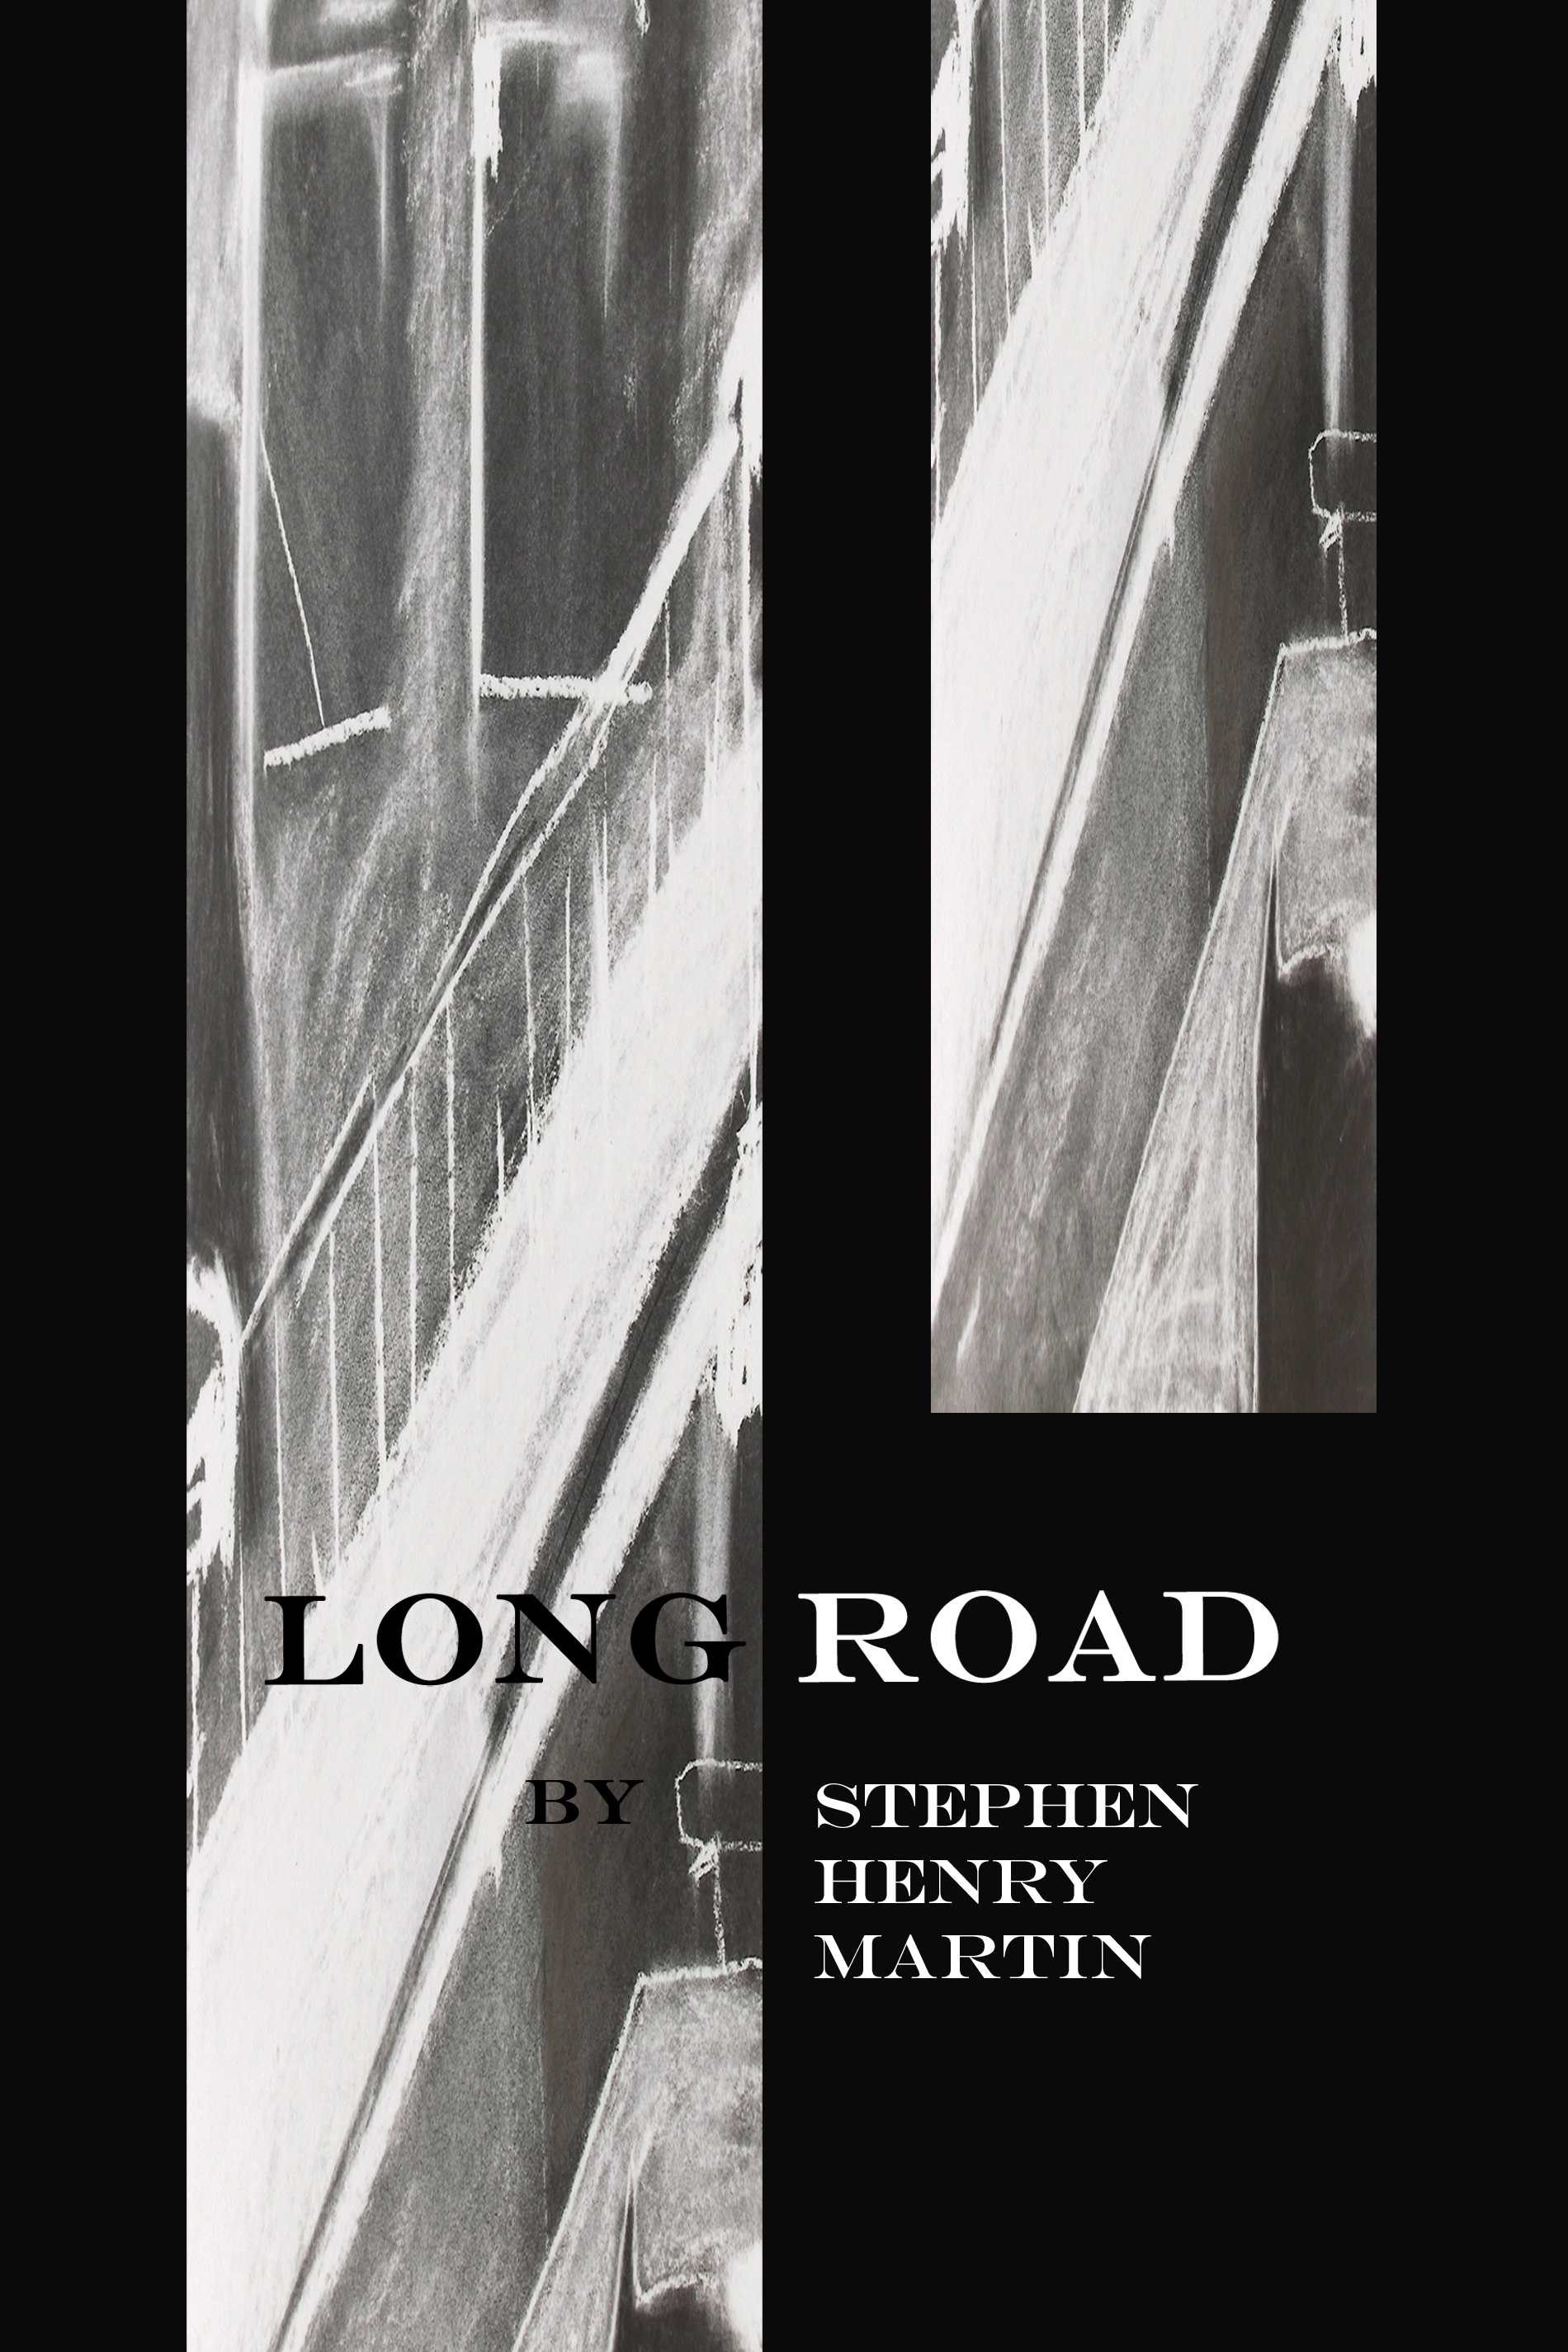 Long Road by Steven Henry Martin